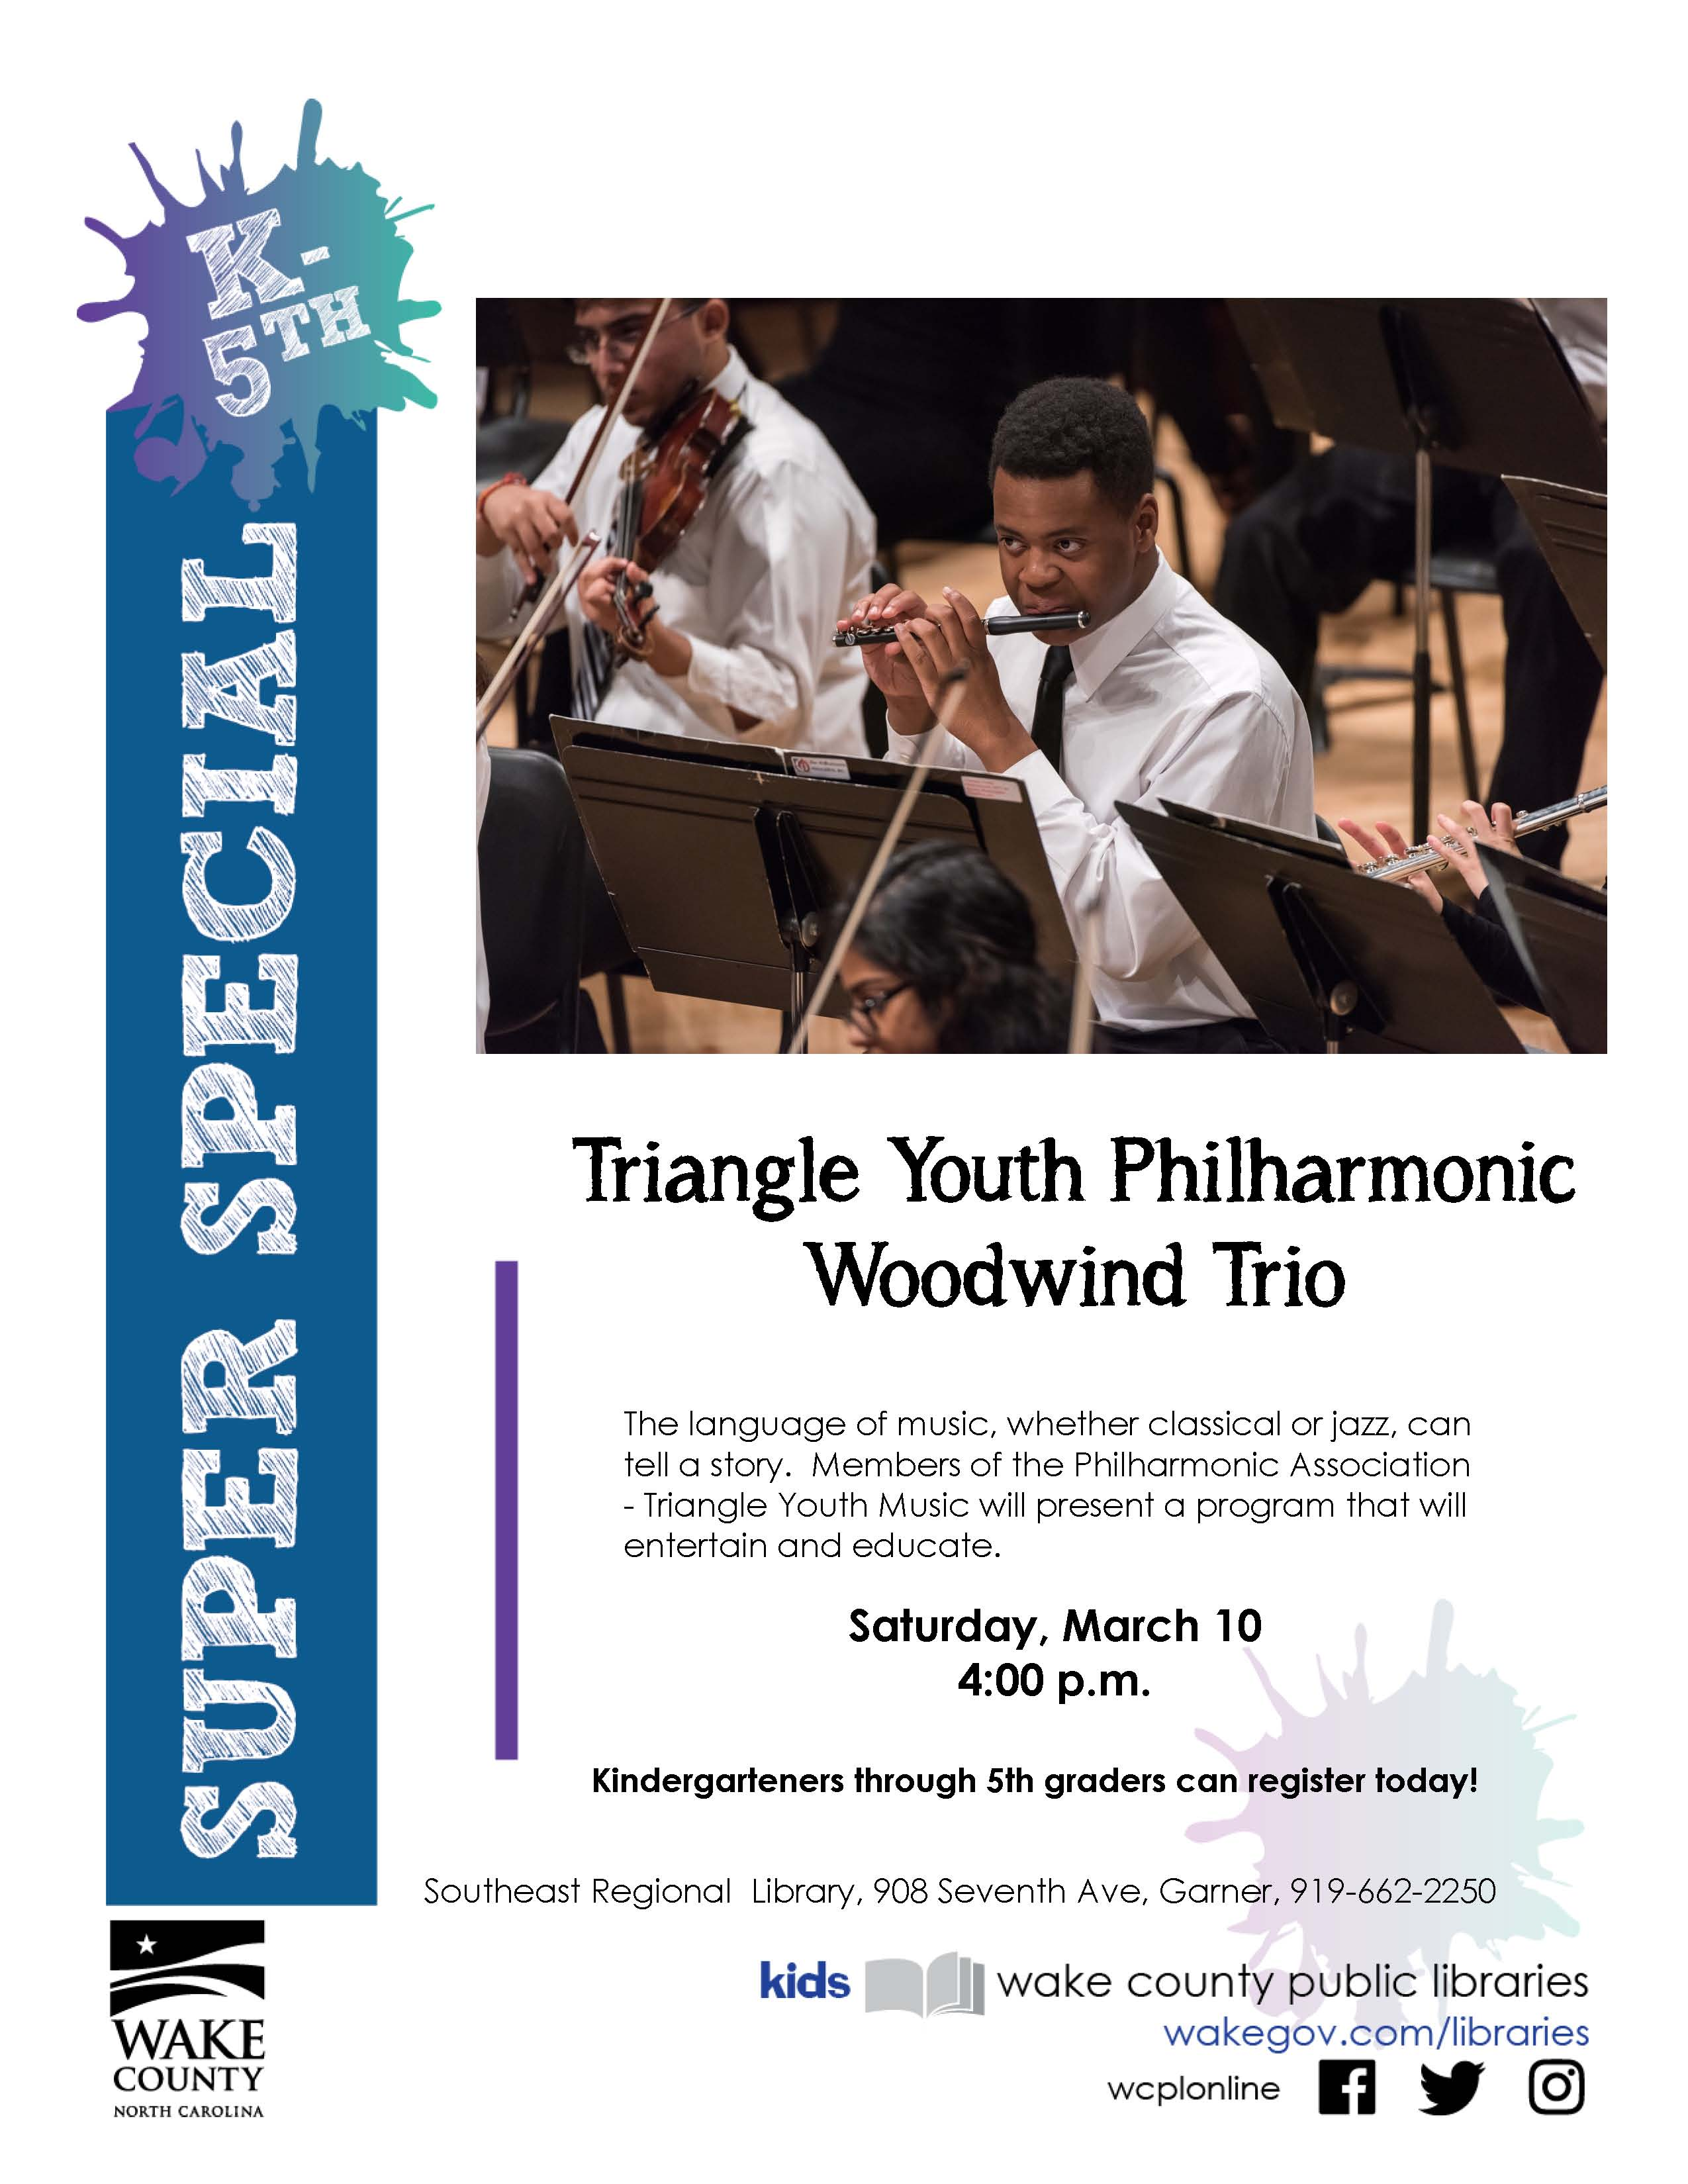 A flyer. Triangle youth philharmonic woodwind trio. Saturday March tenth, 4 PM. Southeast regional library, 908 seventh avenue, garner.